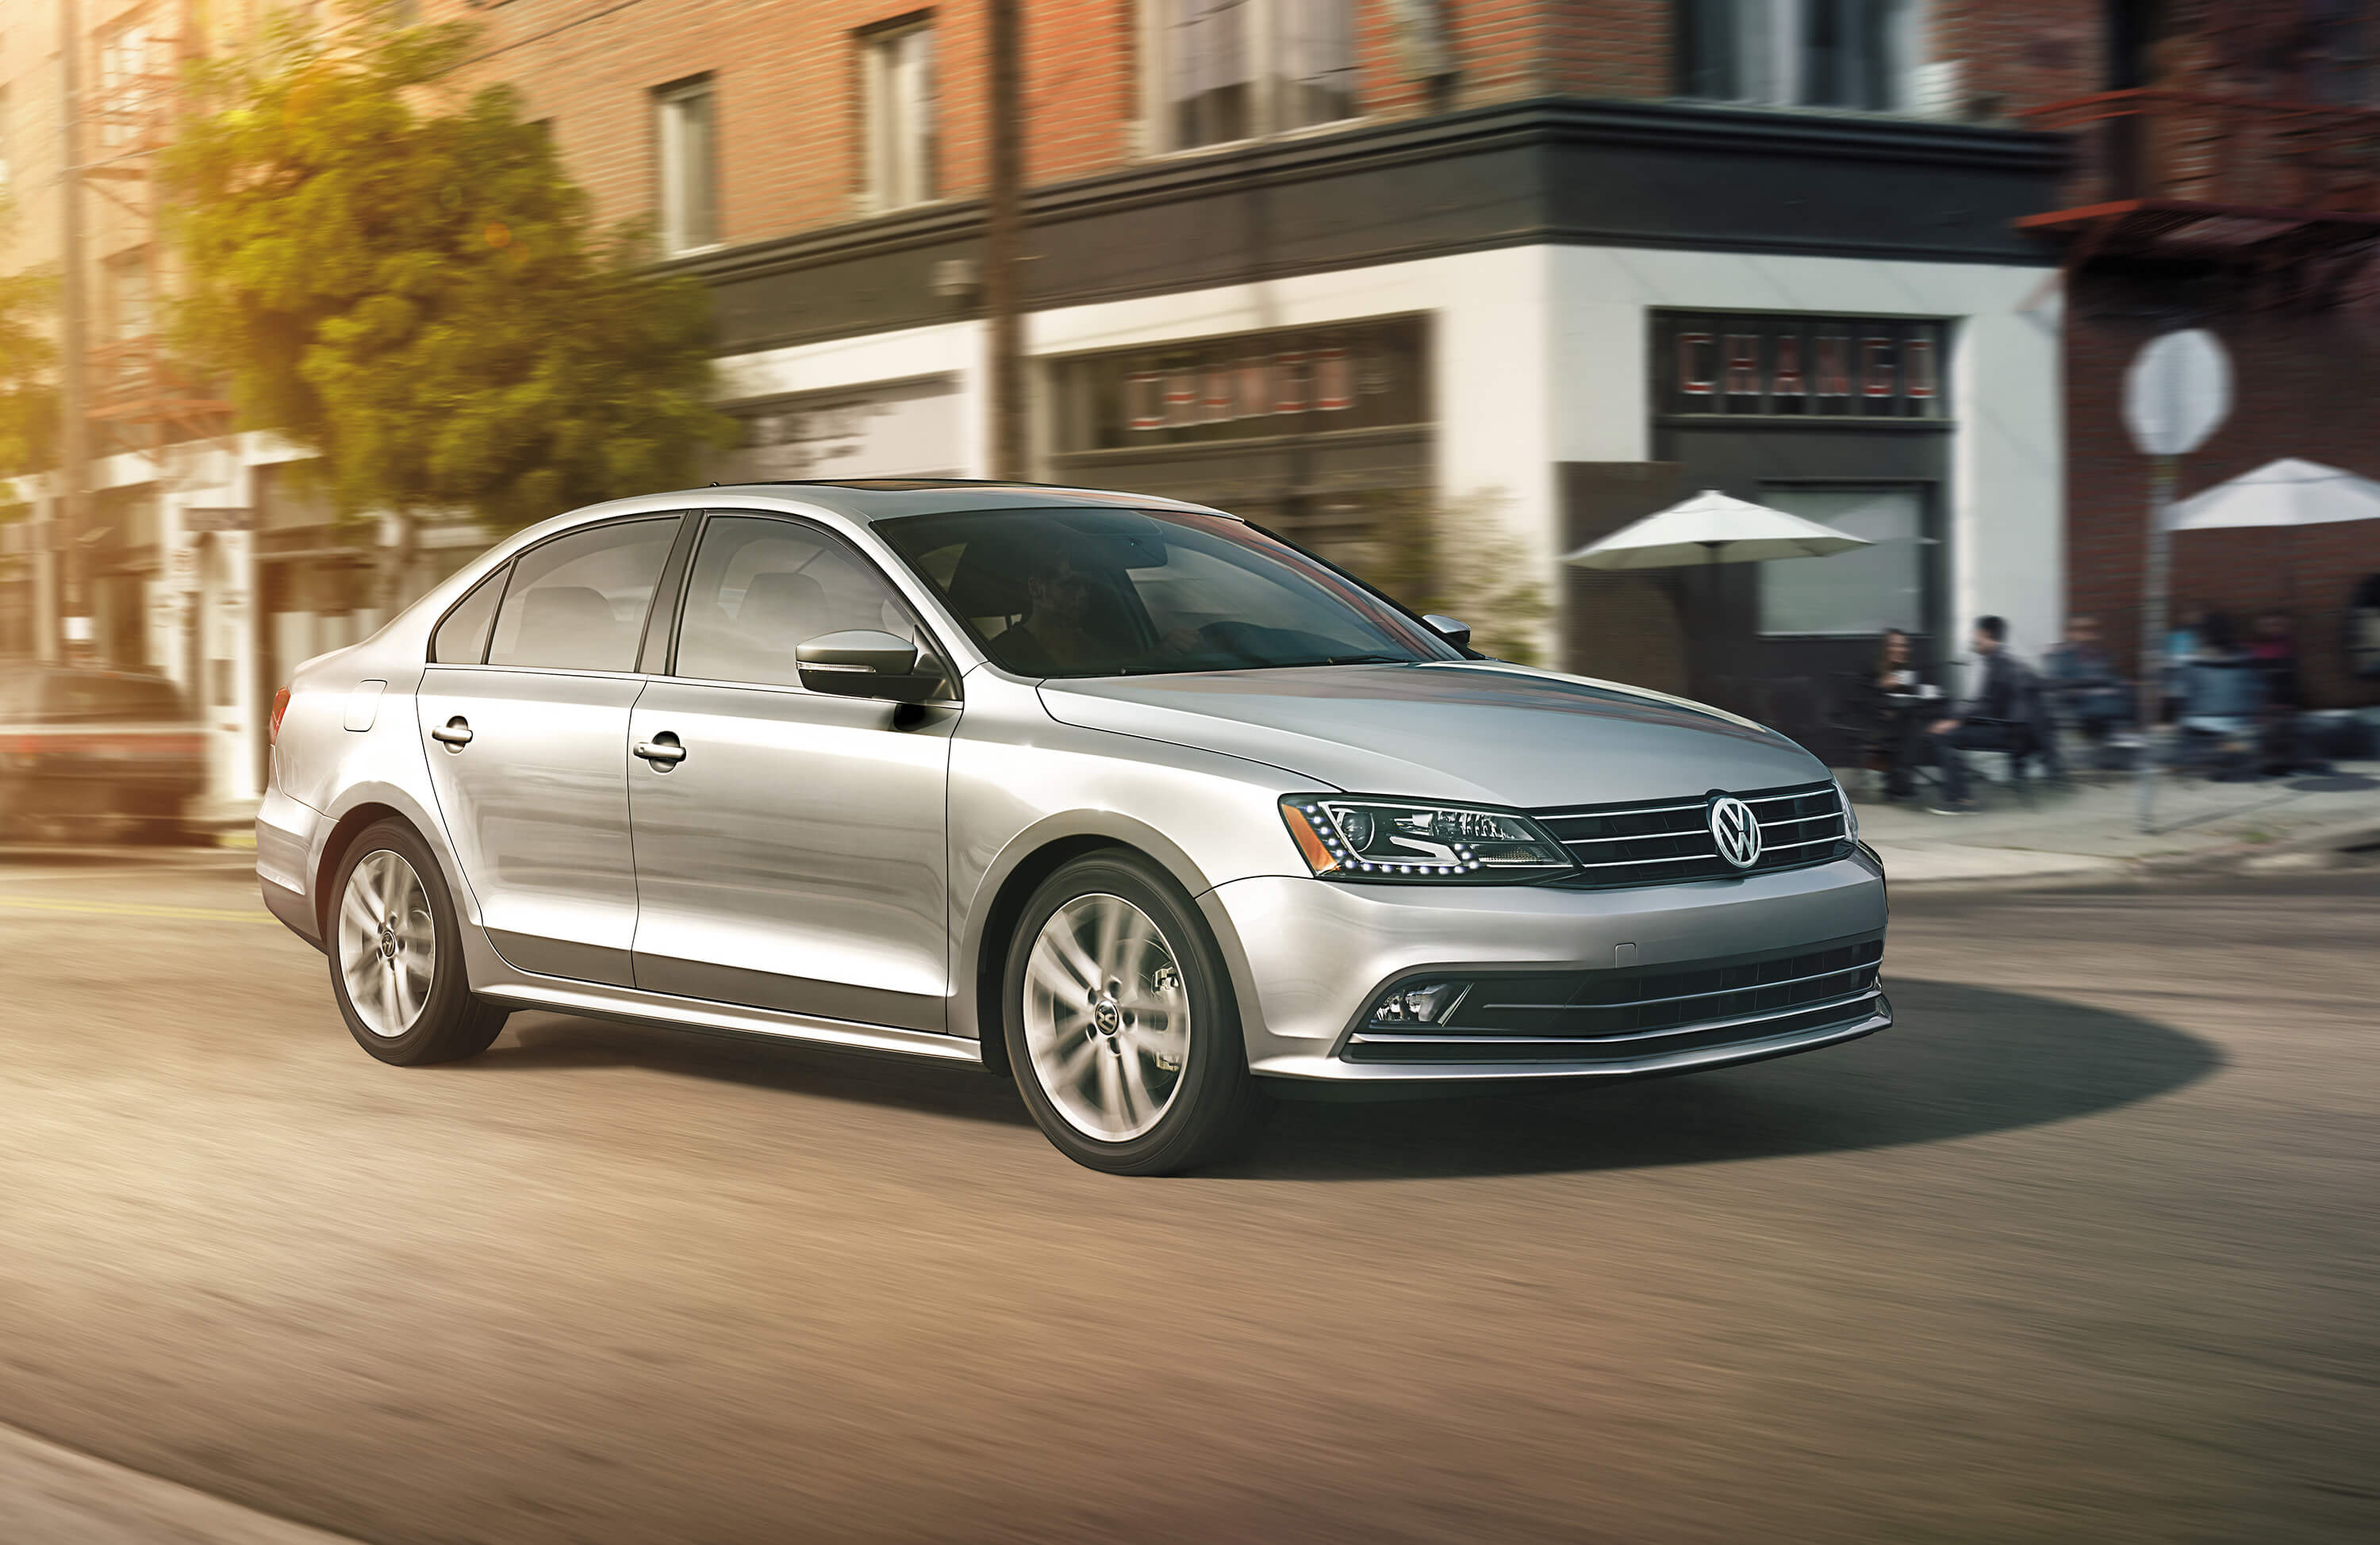 volkswagen-launches-new-14-tsi-in-the-us-replaces-2-liter-on-jetta-98472_1